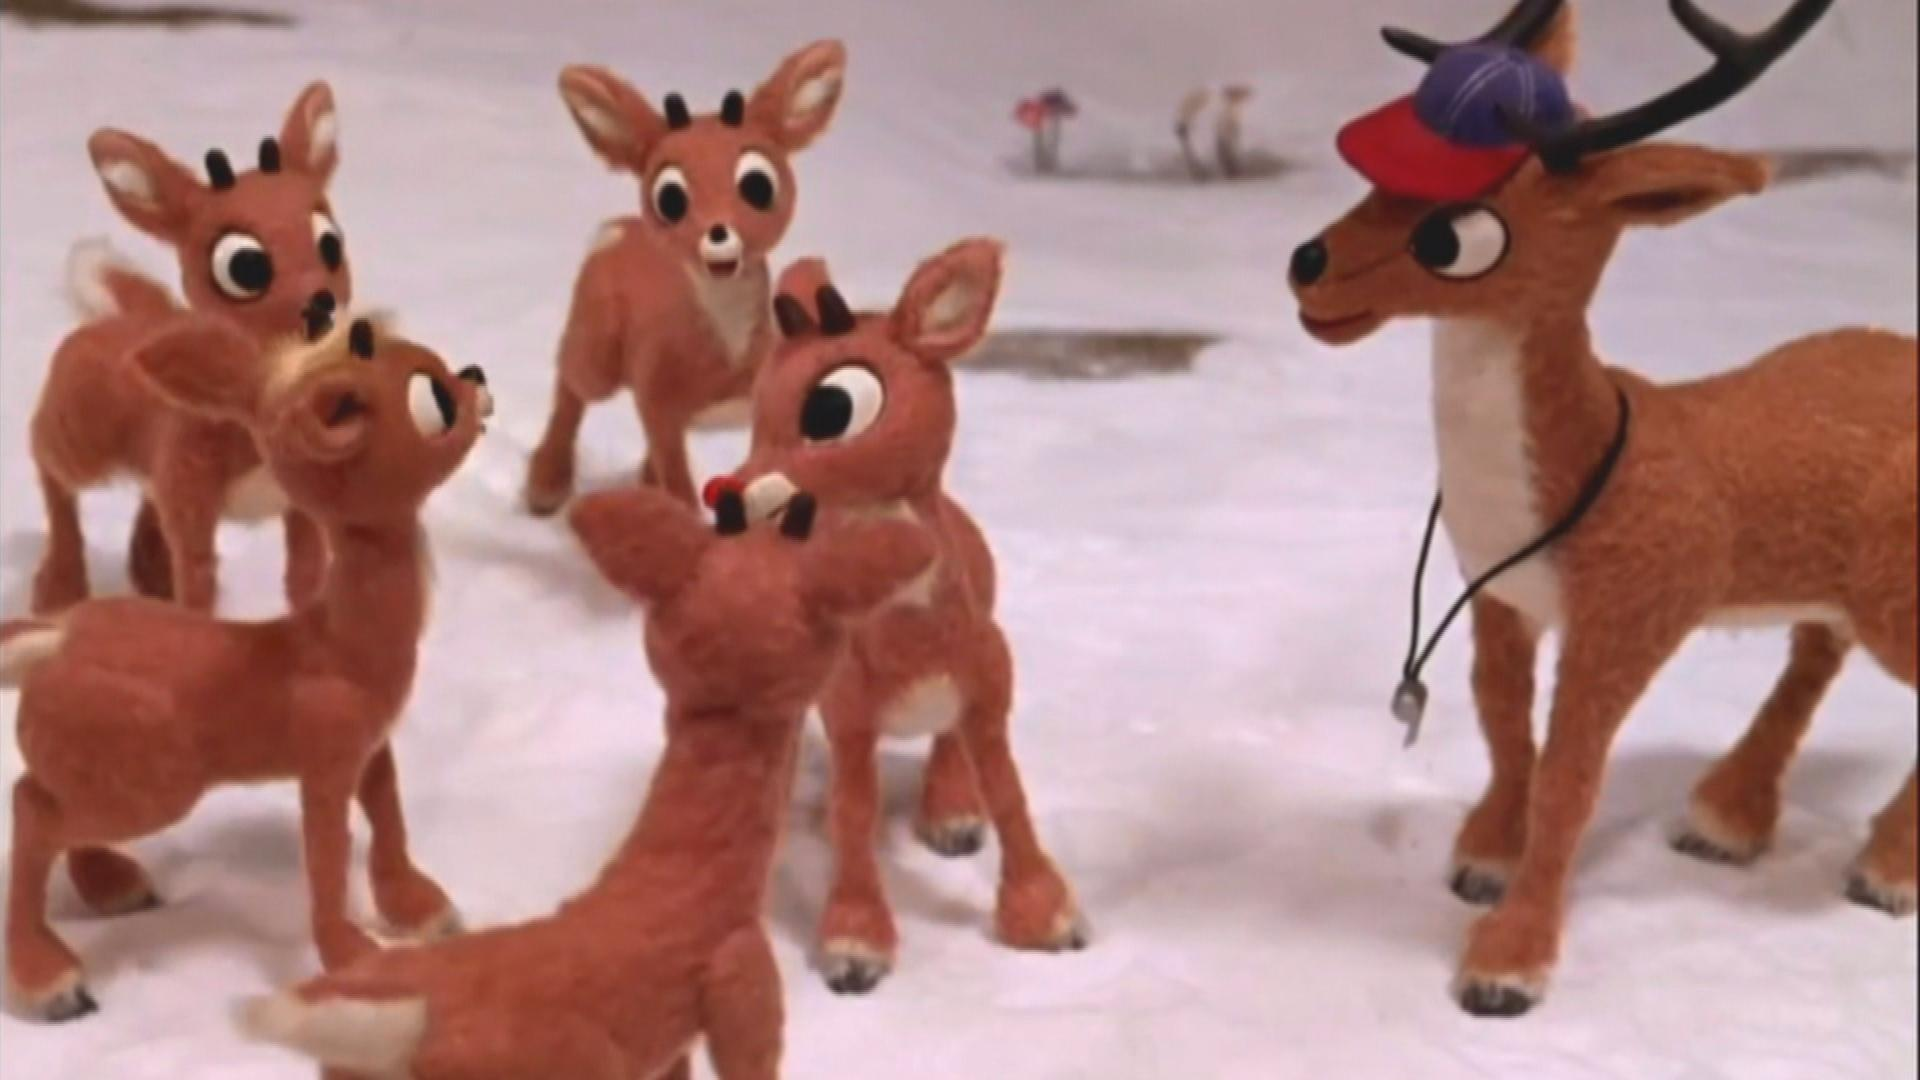 Rudolph The Red Nosed Reindeer And Other Holiday Favorites Face Backlash Over Political Correctness Inside Edition,Most Beautiful States In America